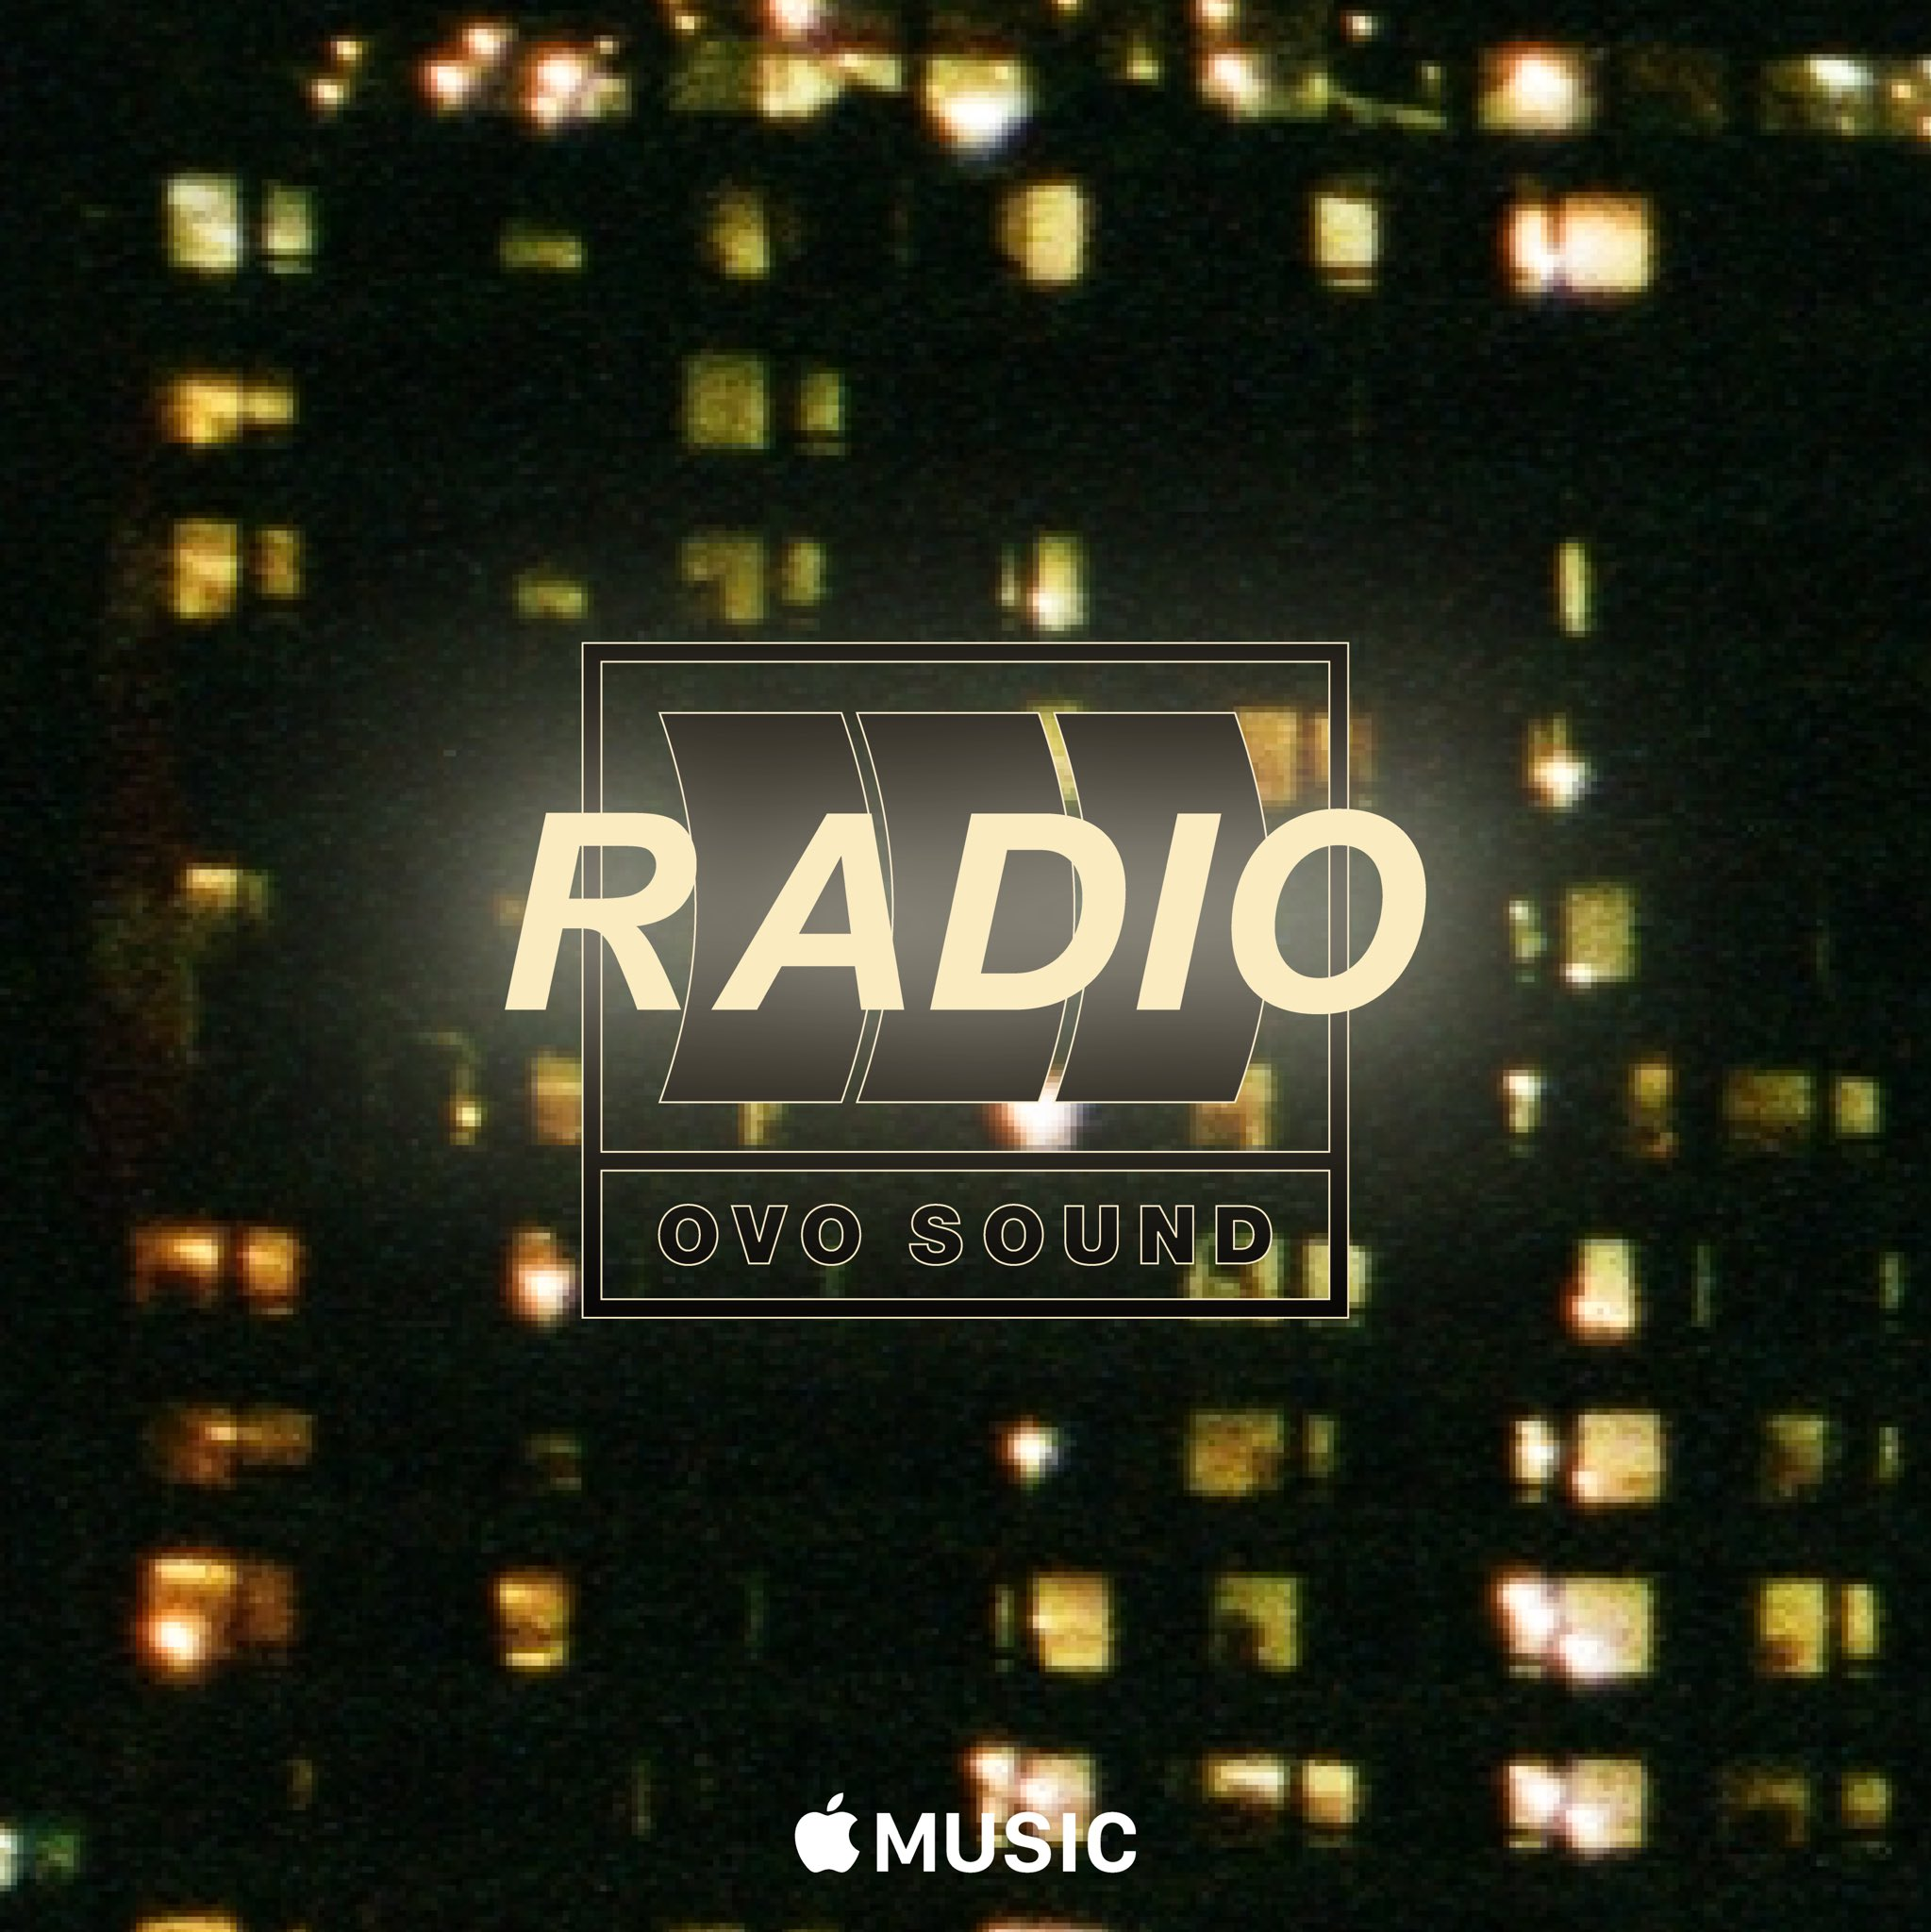 RT @welcomeOVO: Tune into OVO Sound Radio episode 52 tomorrow at 3pm PST / 6pm EST / 10pm GMT @applemusic https://t.co/UMjlzYaf2P